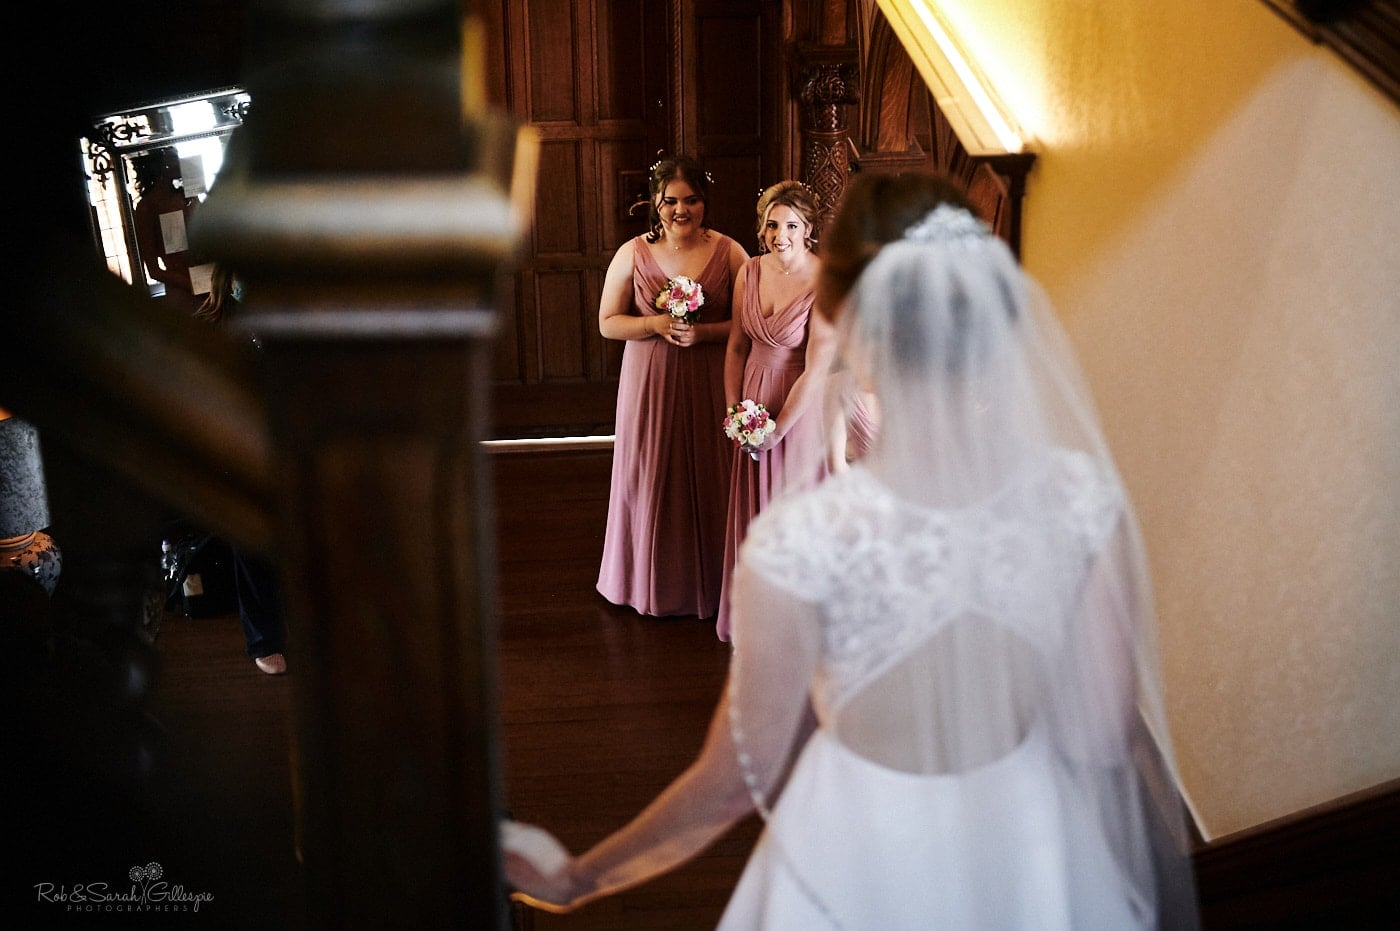 Bridesmaids watch as bride descends staircase at Pendrell Hall